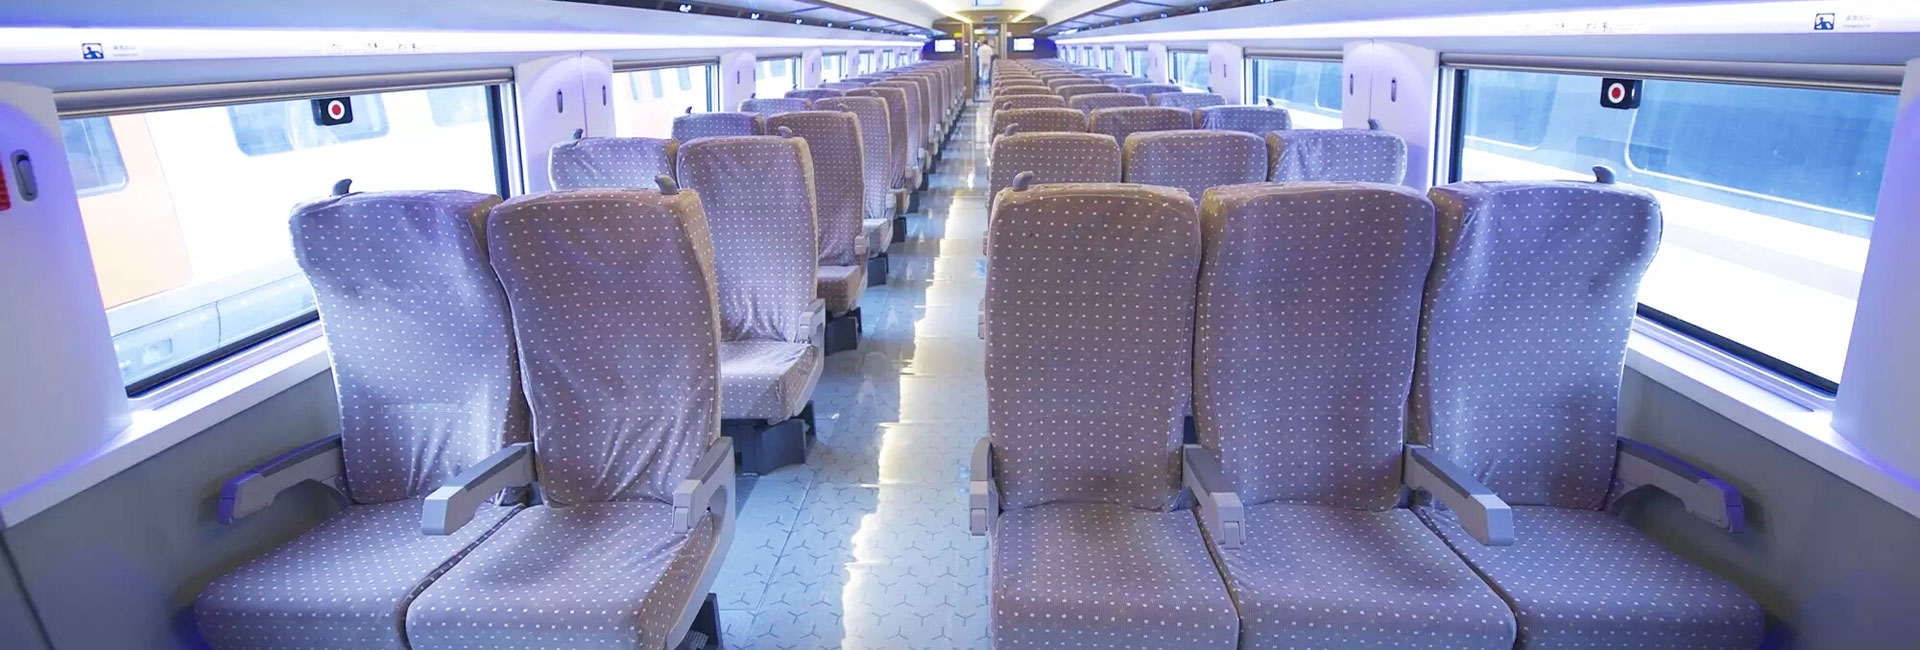 China Bullet Train Second Class Seat